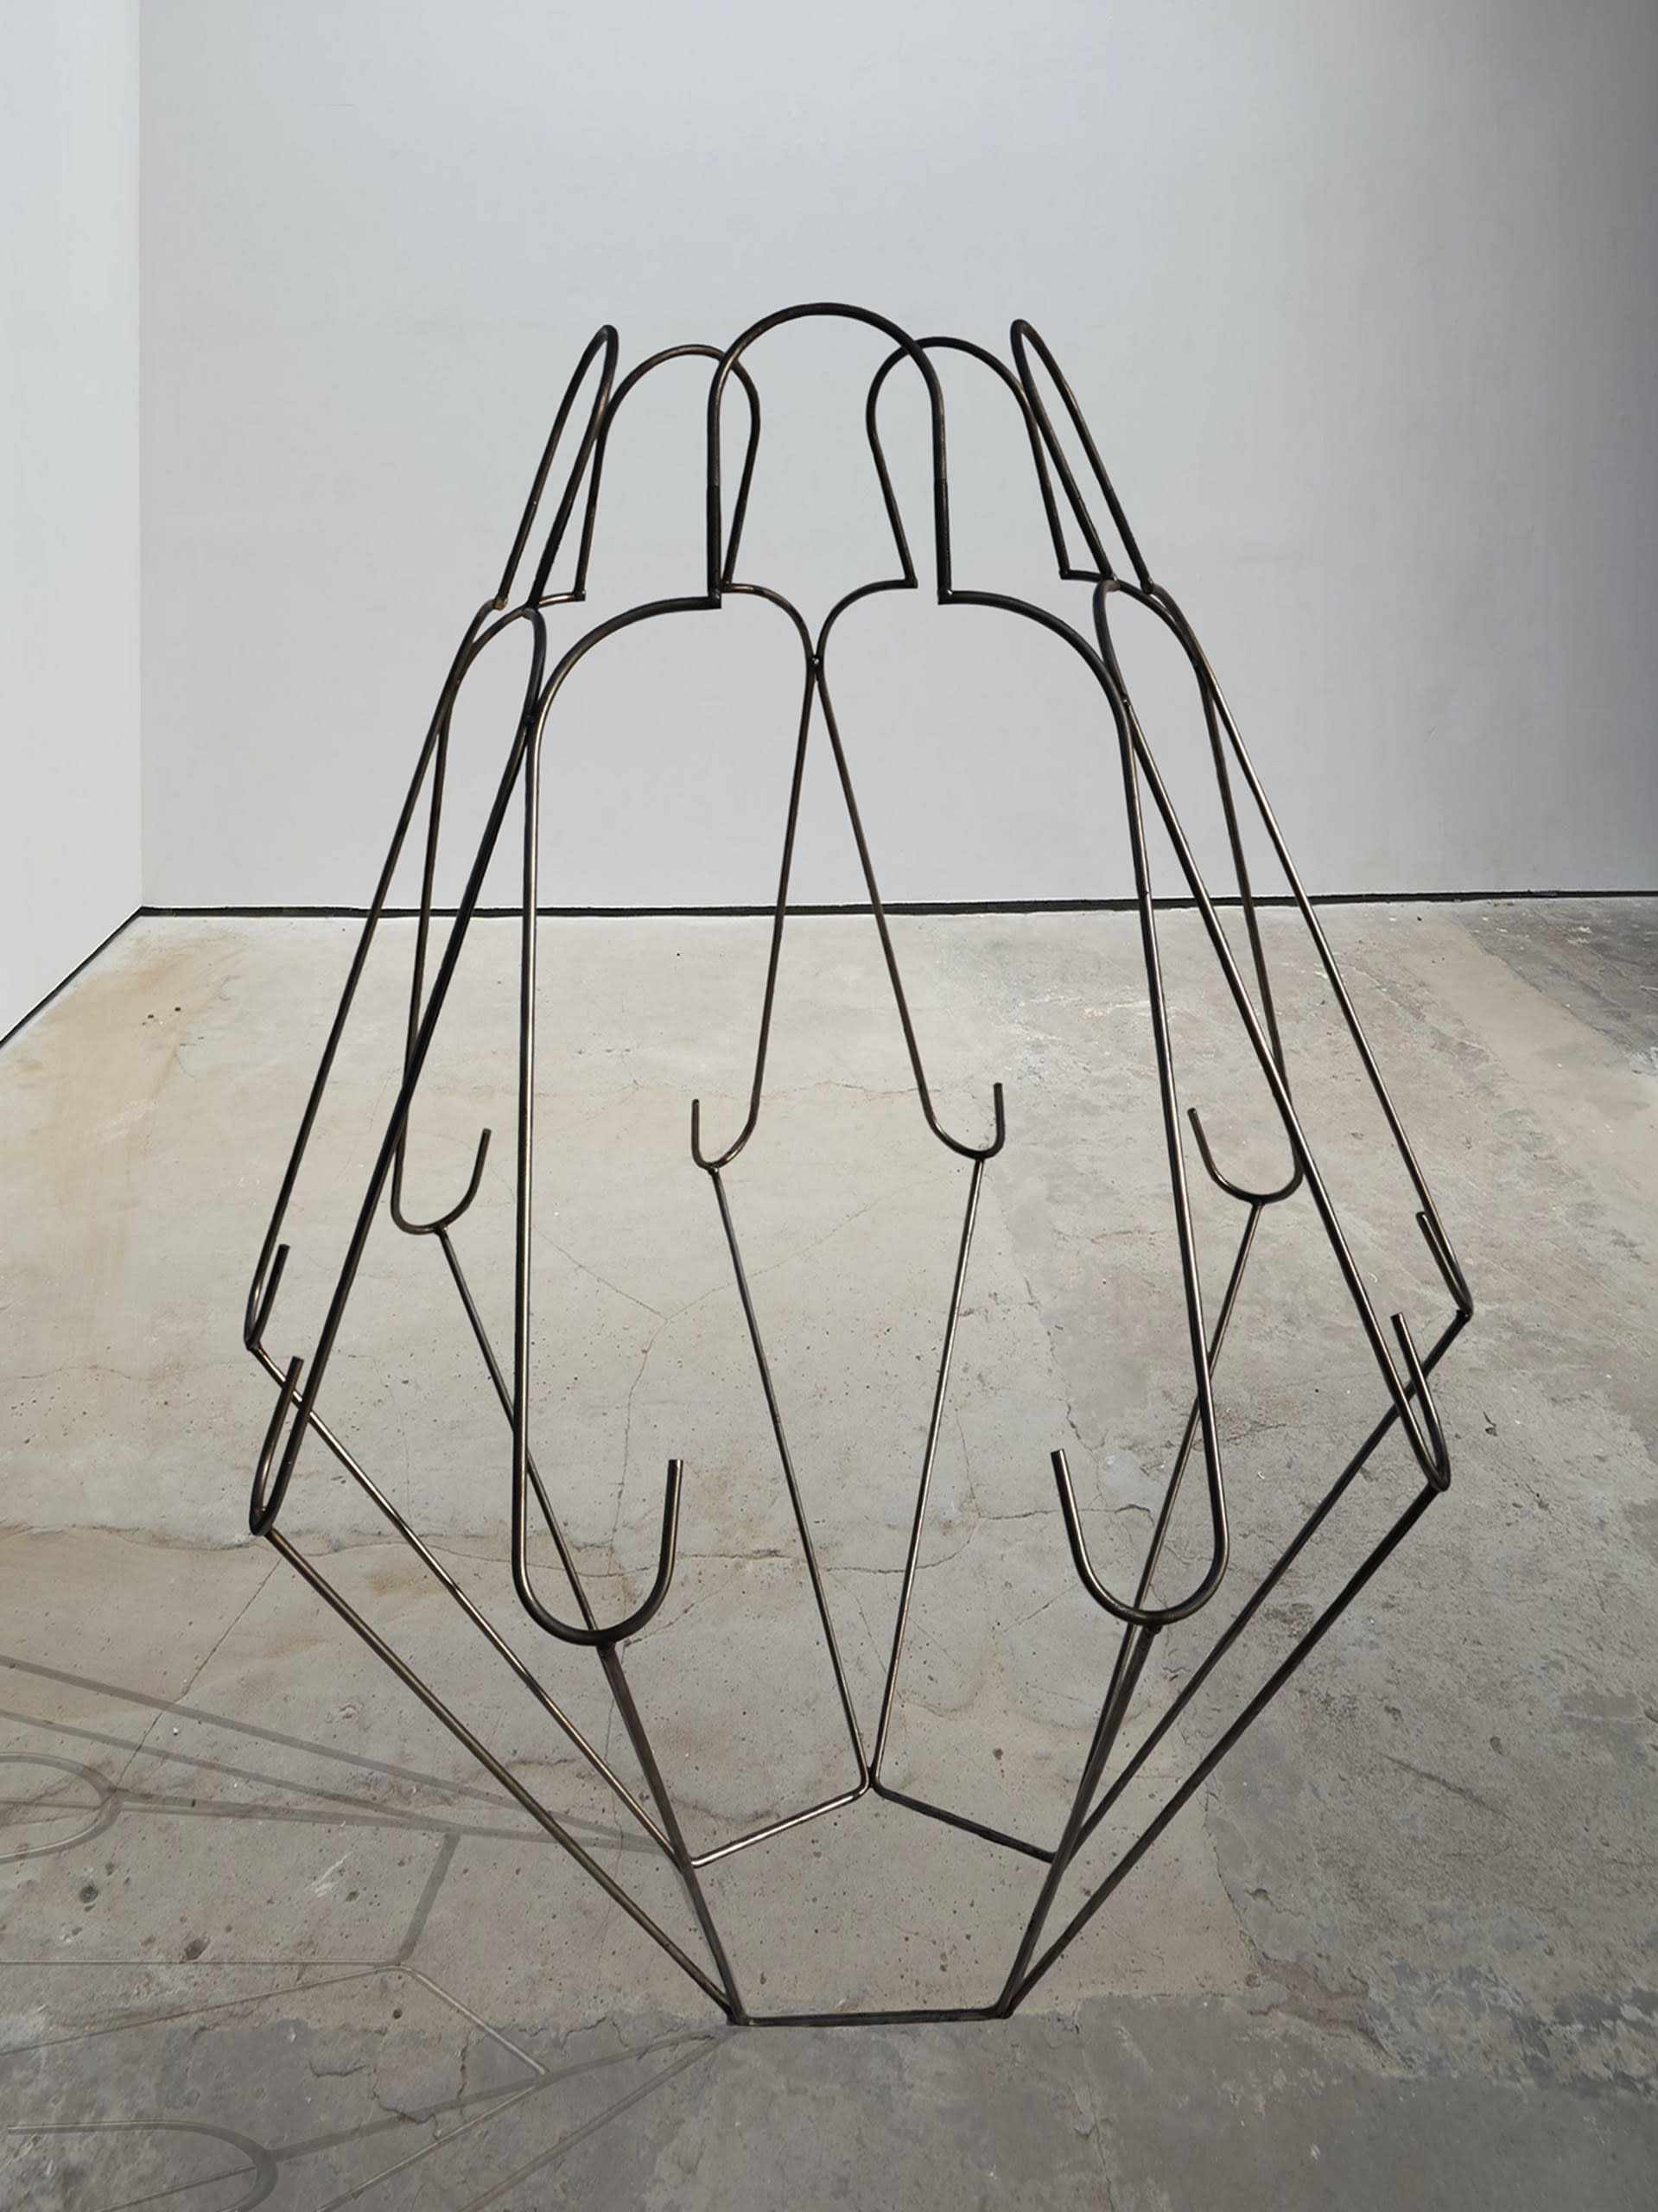 'Connection' — Welded high tensile steel rod — 160 x 100 x 100 cm